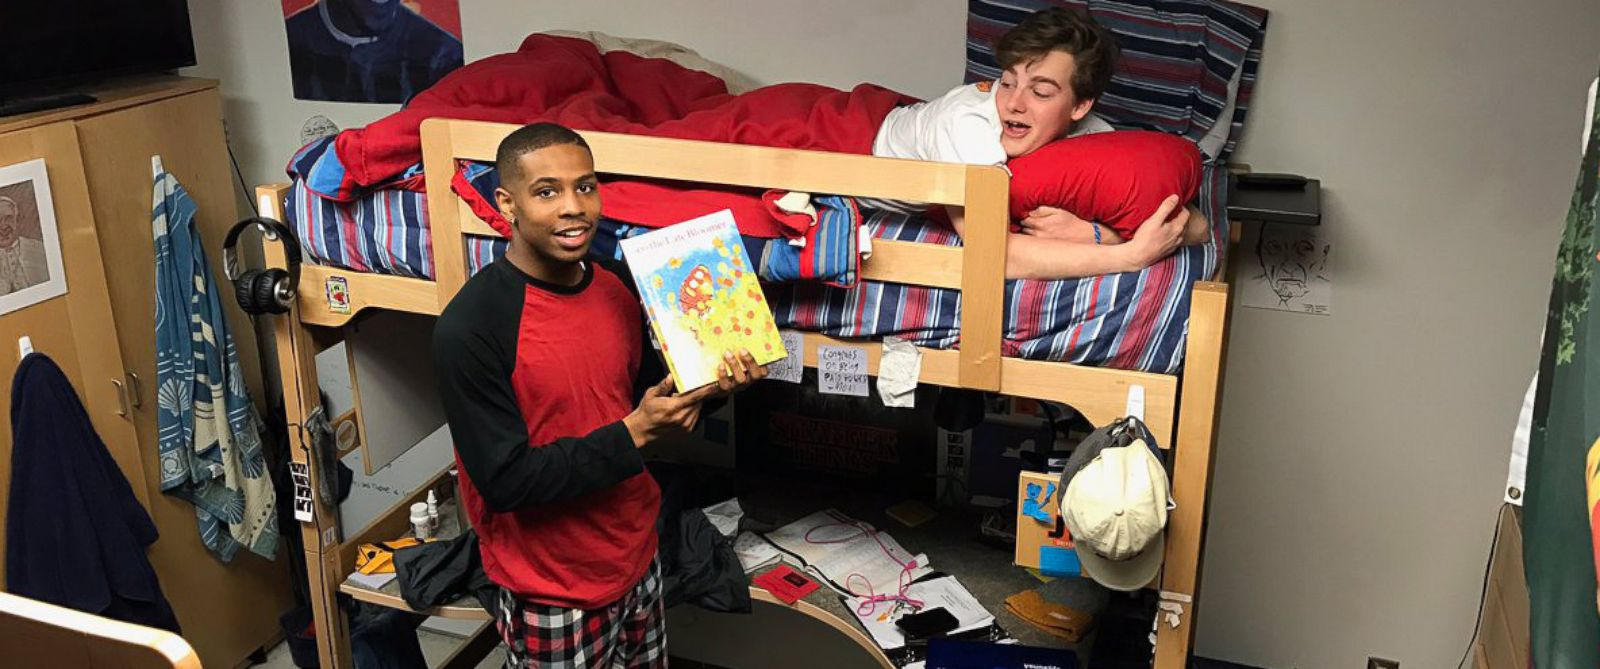 PHOTO: After University of Tennessee resident assistant Quamir Boddie asked his students what they needed to feel at home, he fulfilled Andrew Kochambas request of reading him a bedtime story.